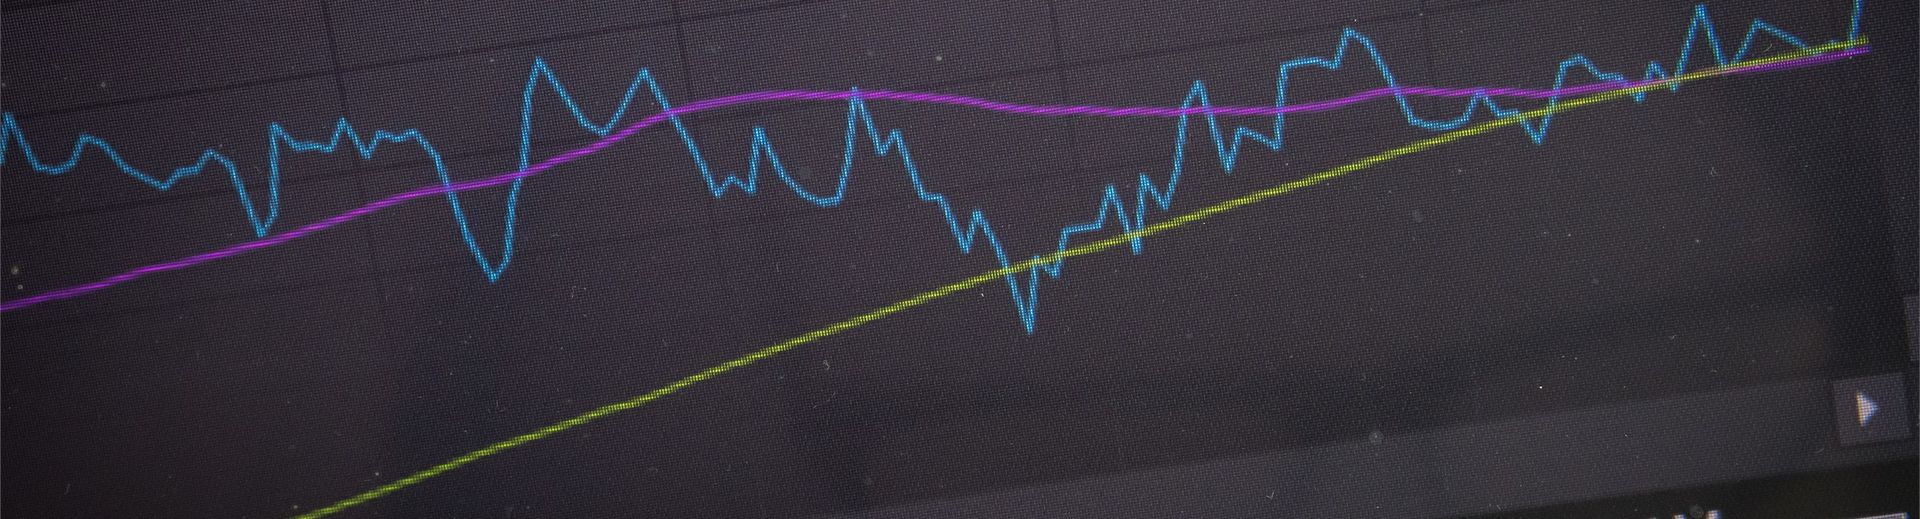 A line graph depicting data on a computer screen.